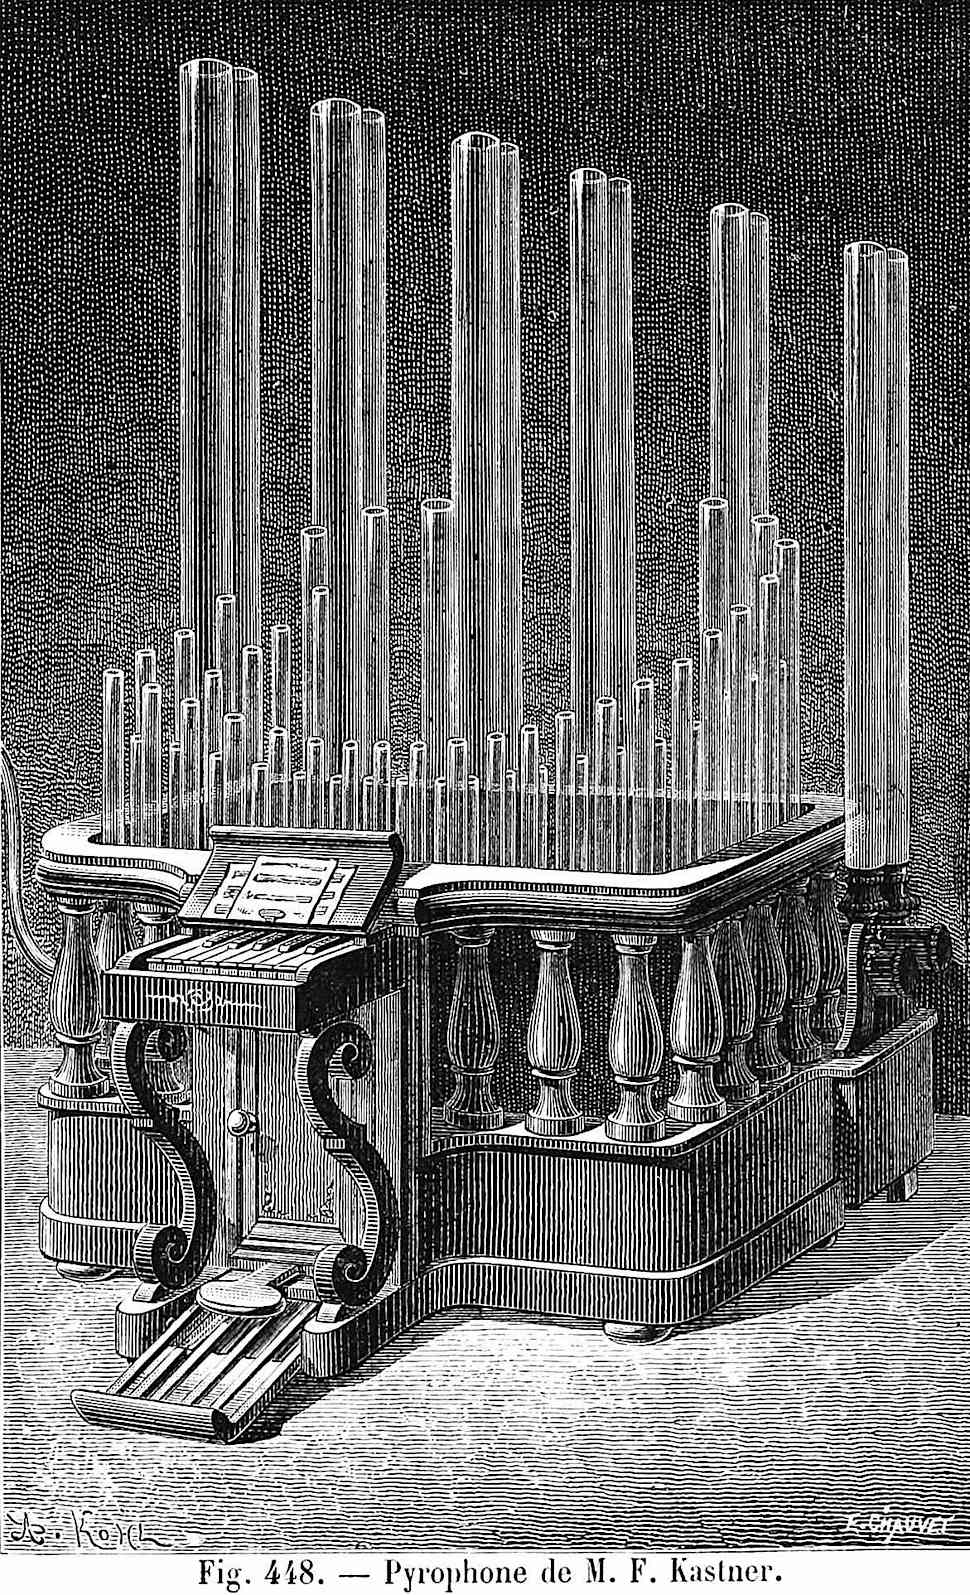 an 1881 Pyrophone by M.F. kastner, an instrument like an organ that played by lighting a fire in a glass tube